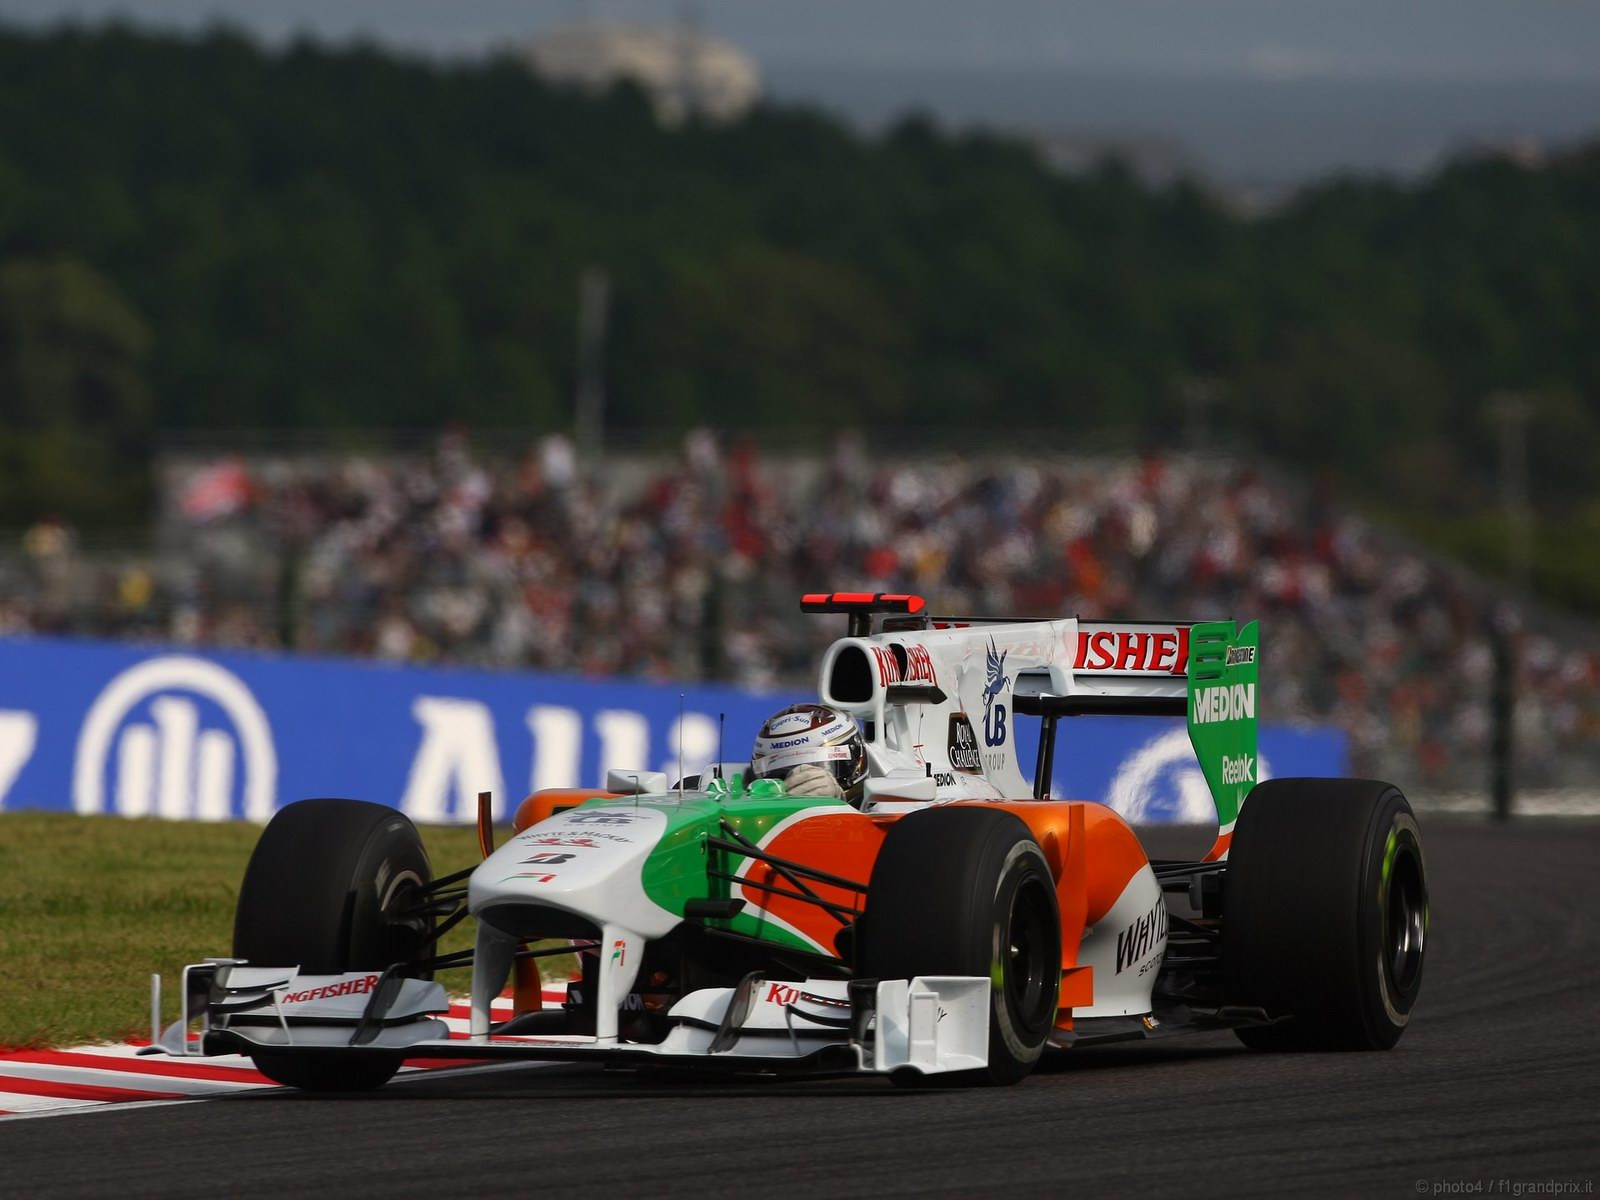 pojazdy - formula1 - gp_giappone_wallpapers_000062